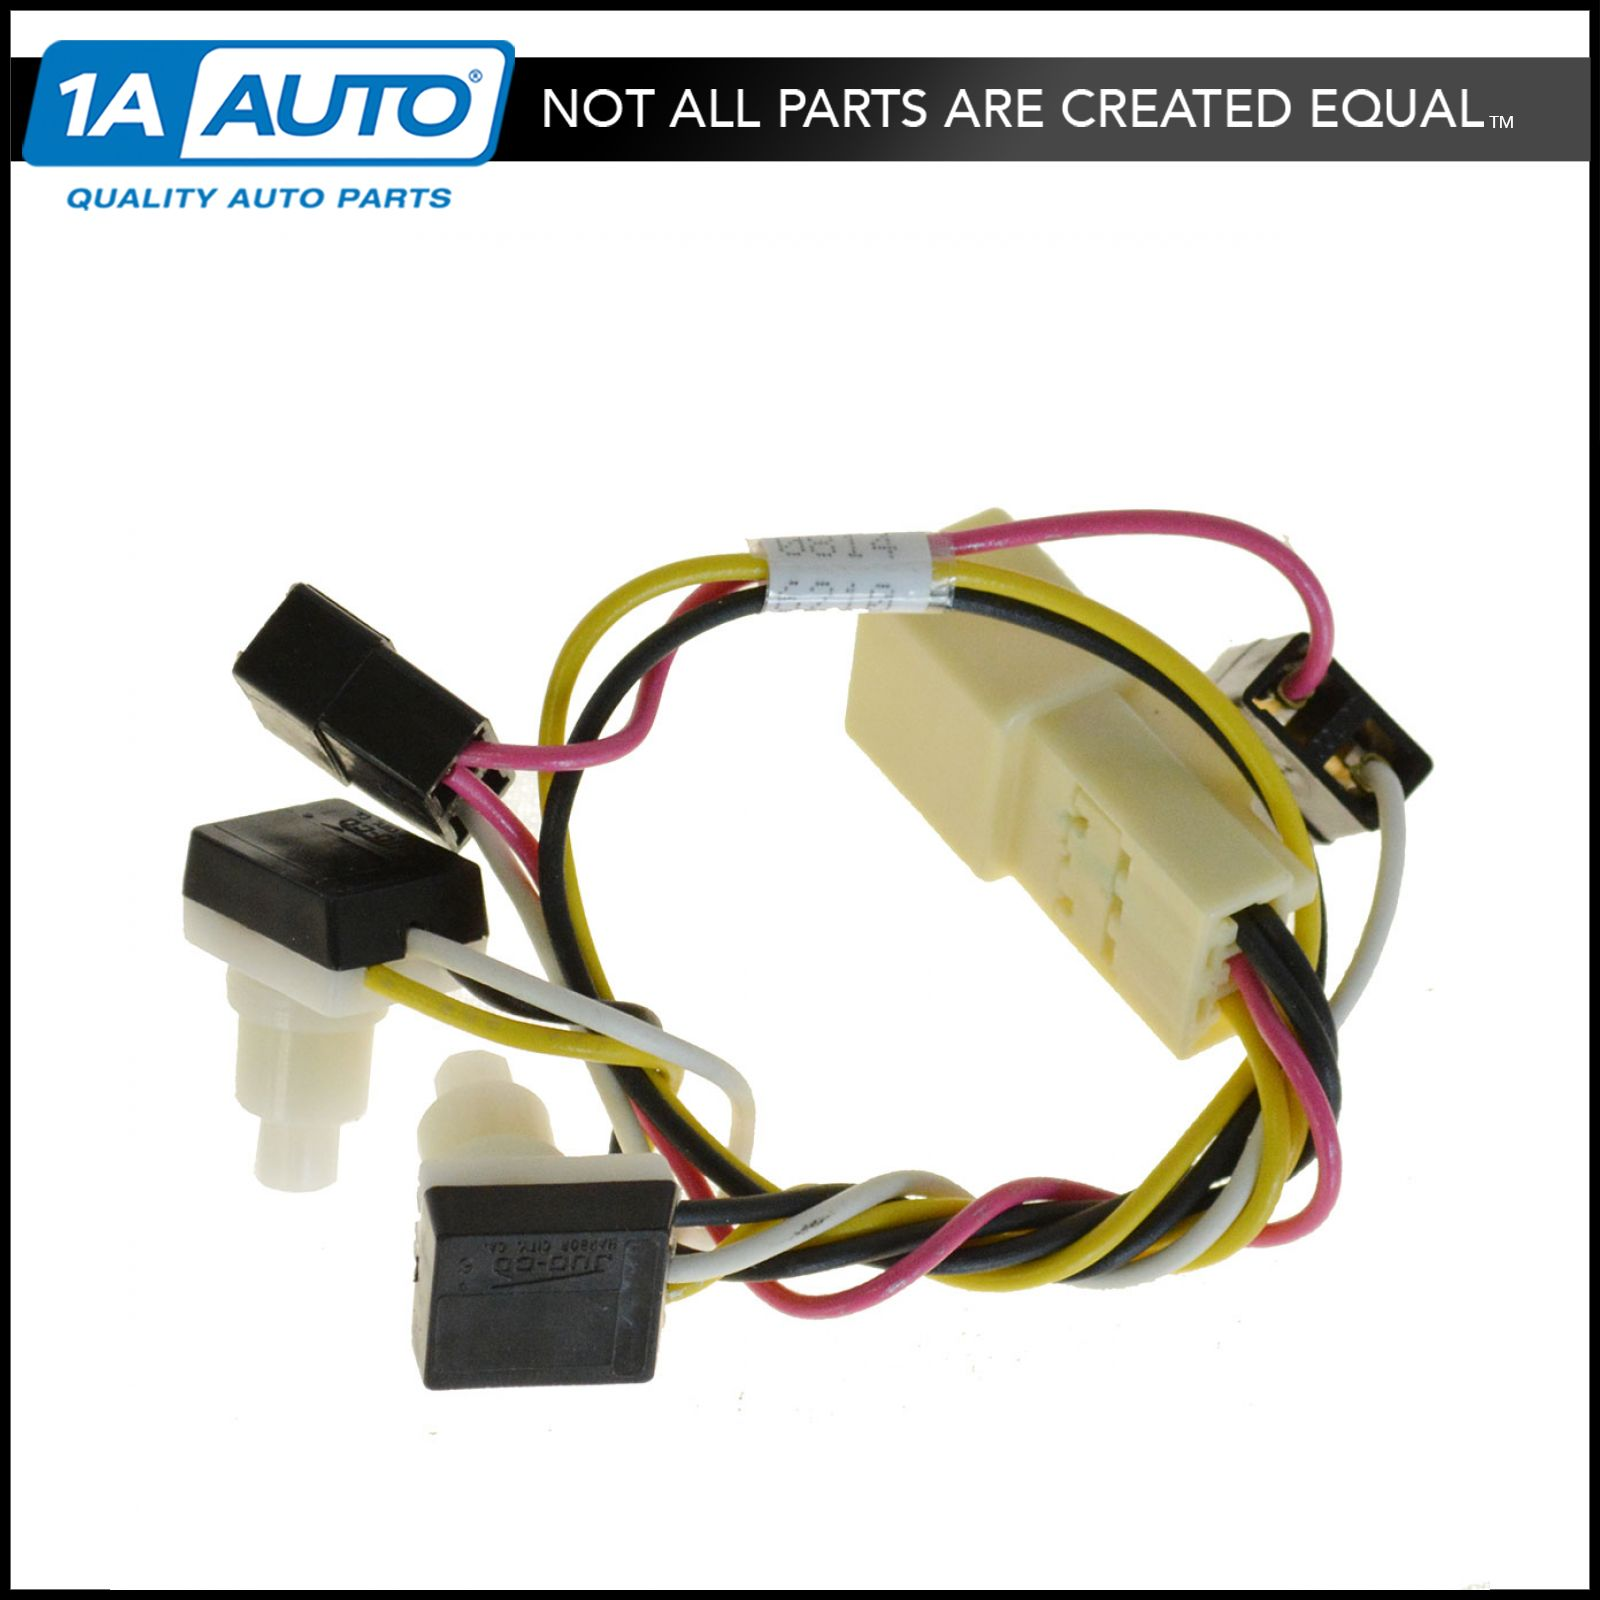 Oem Overhead Console Map Light Wiring Harness & Switches For Dodge Ford  F250 Wire Harness 2004 Dodge Ram Overhead Wire Harness